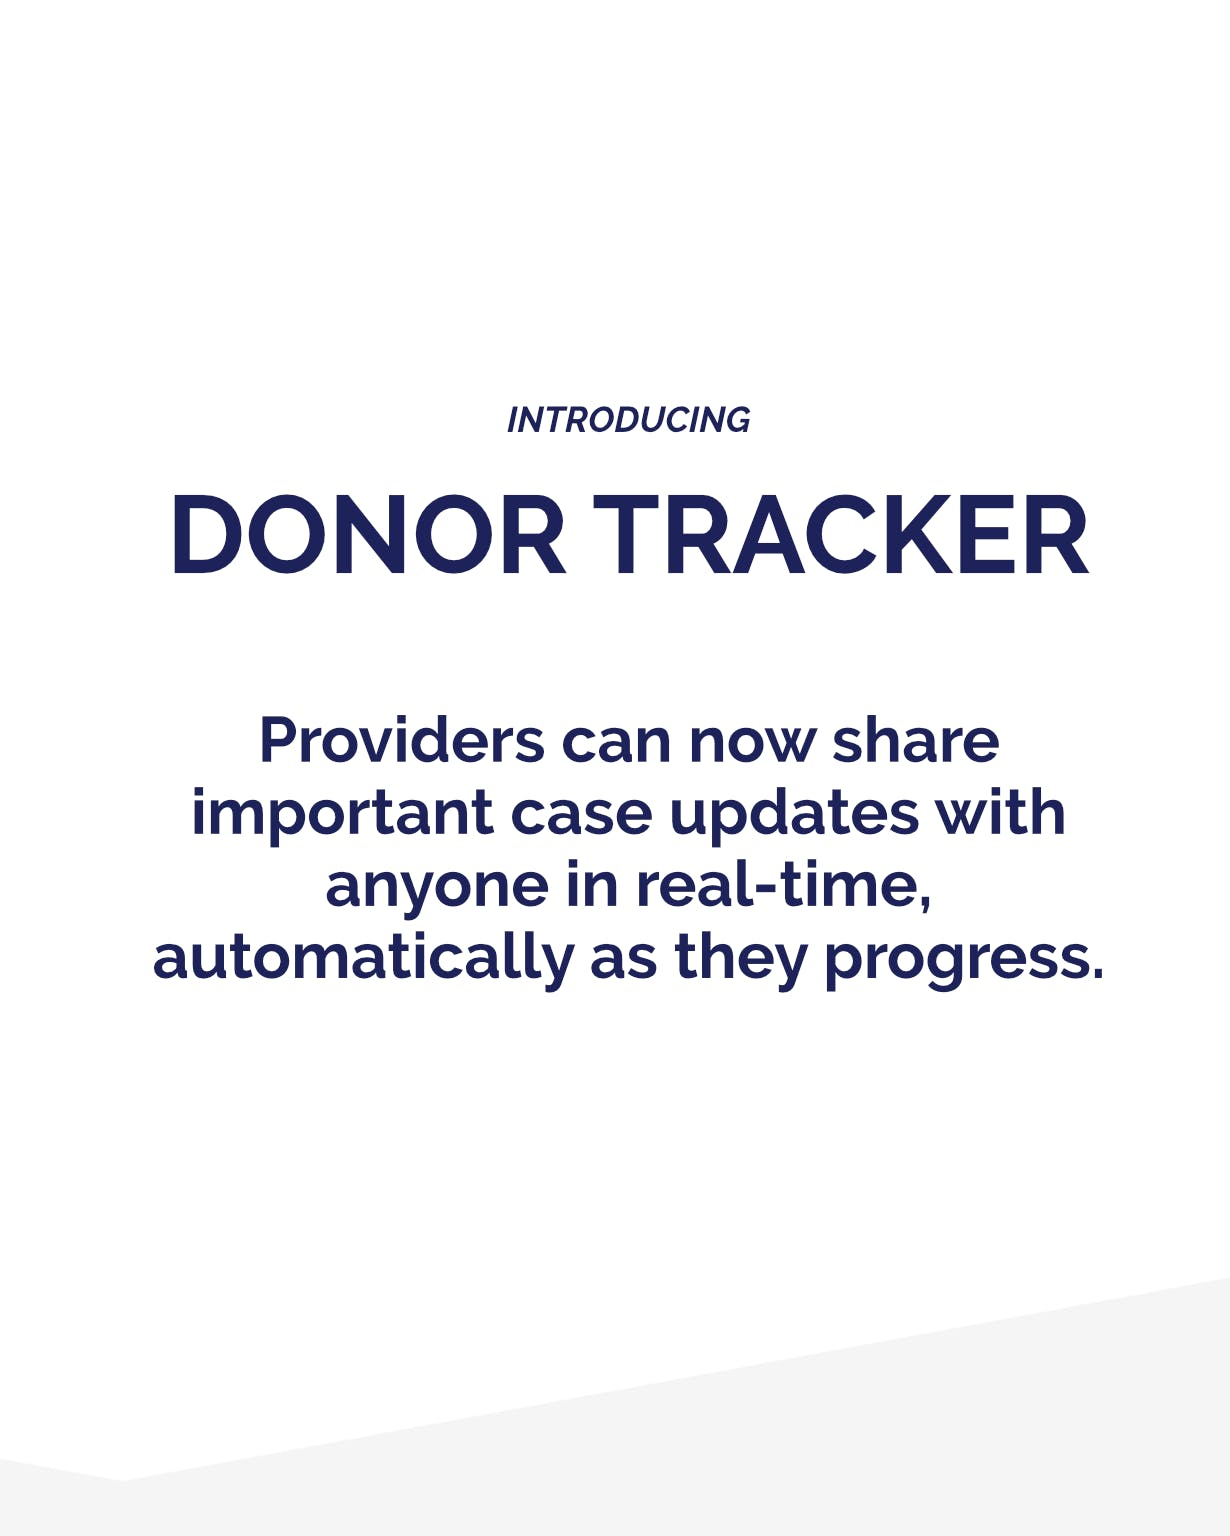 donor tracker. providers can now share important case updates with anyone in real-time automatically as they progress